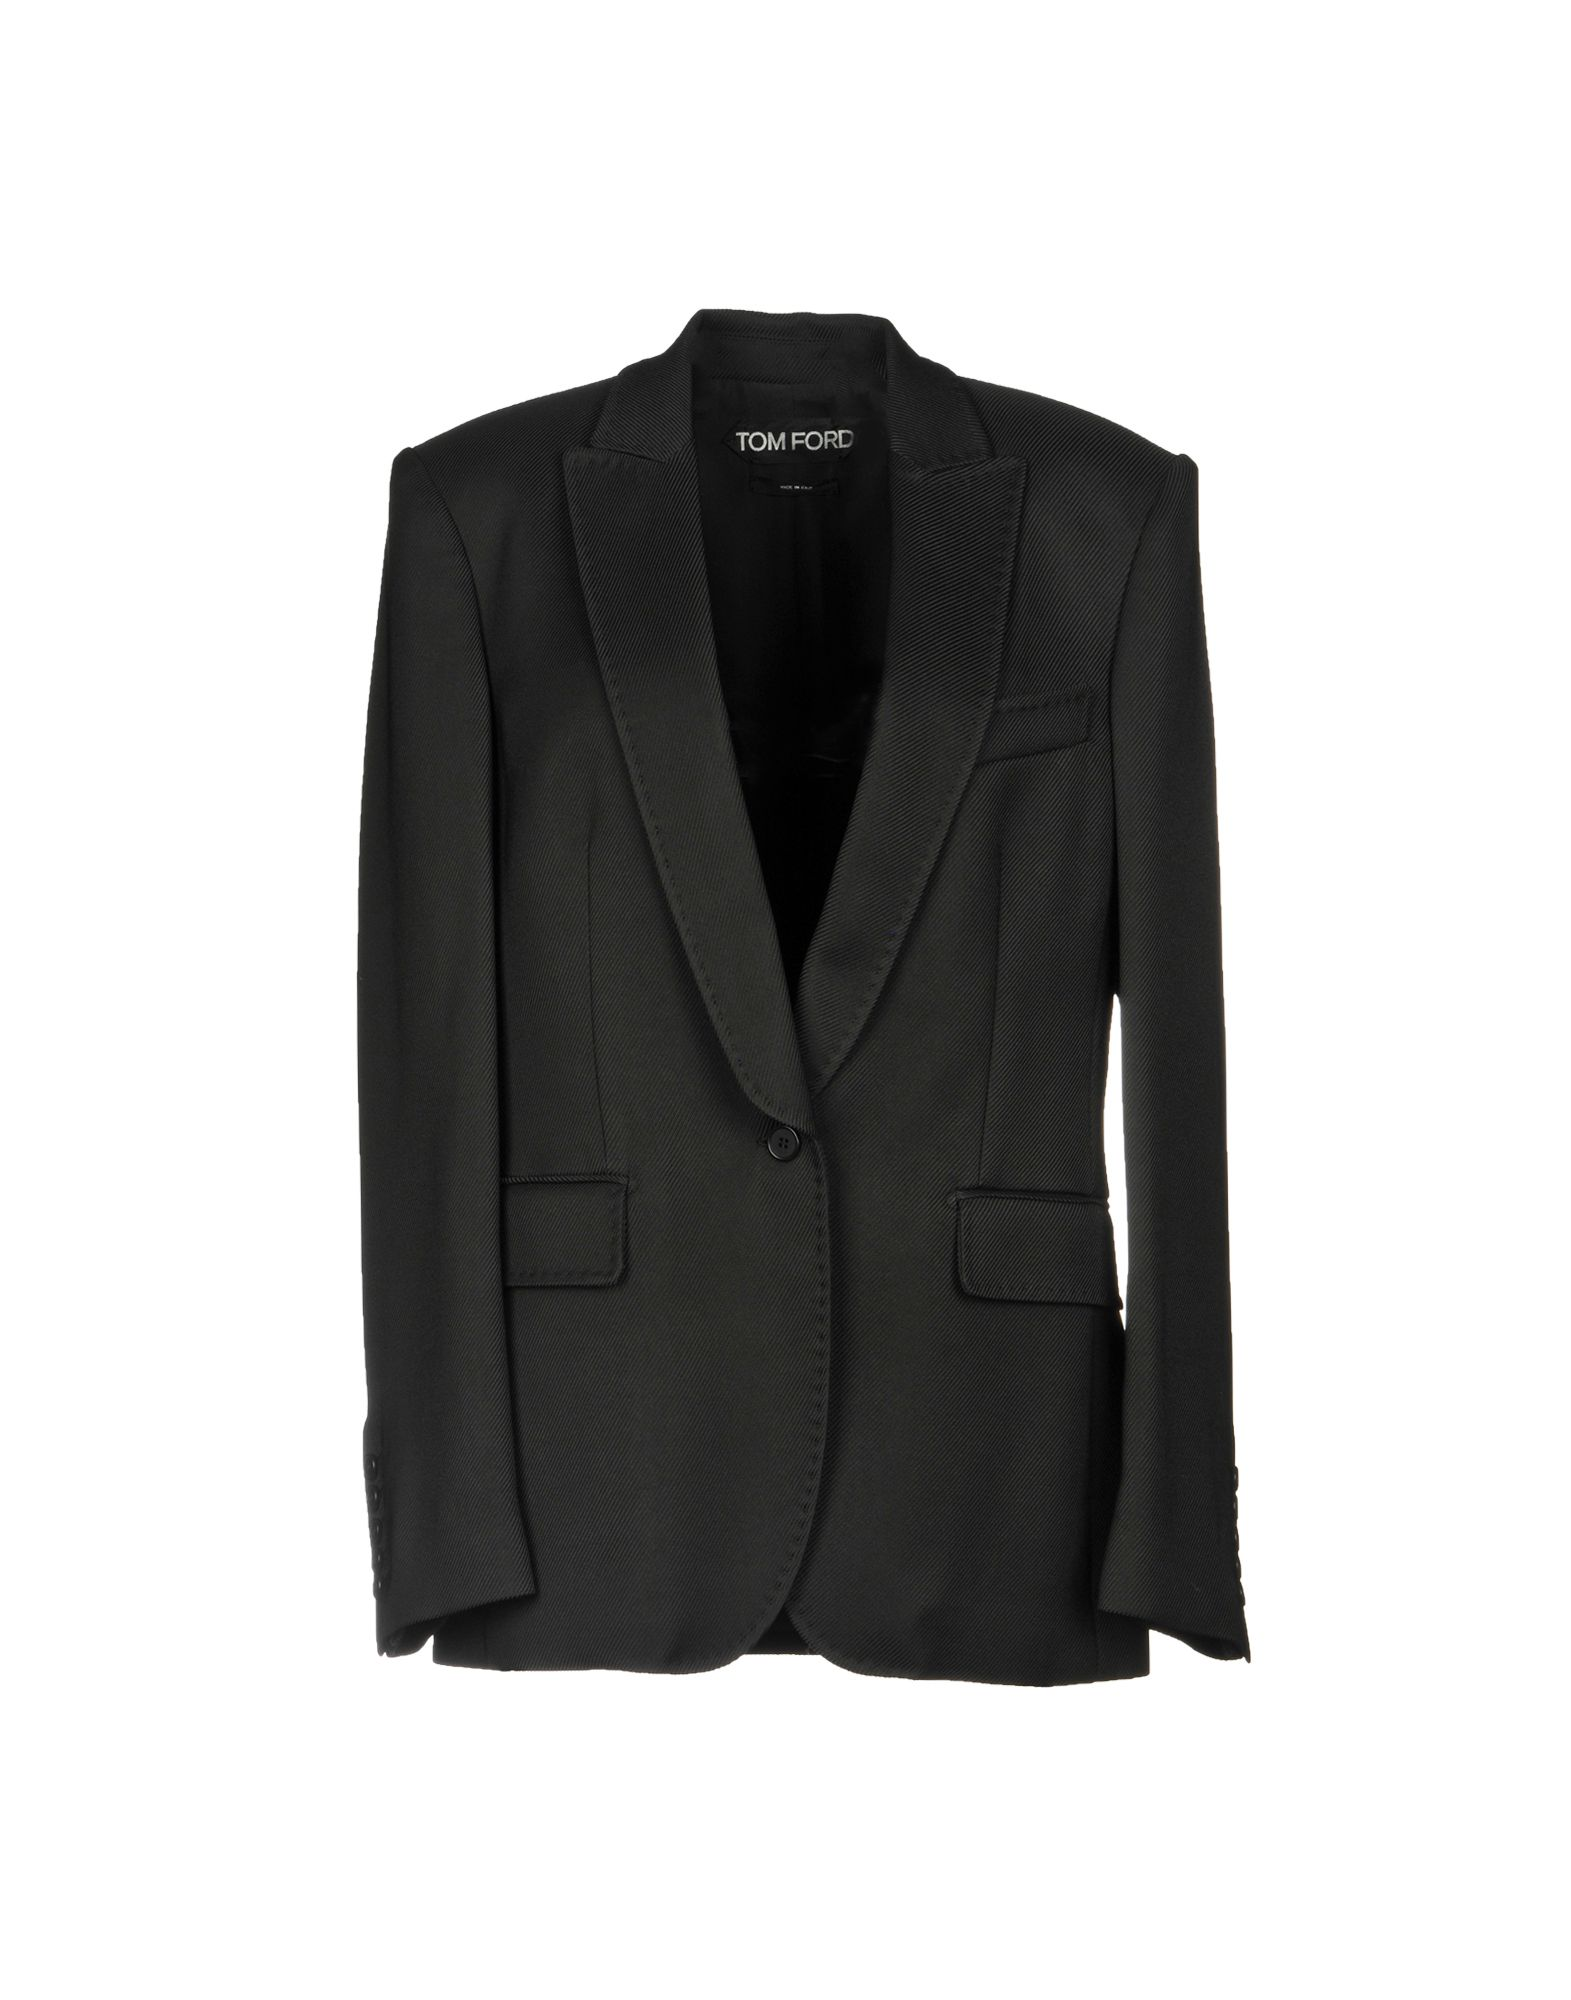 Tom Ford Women - shop online suits, clothing, shoes and more at YOOX ...